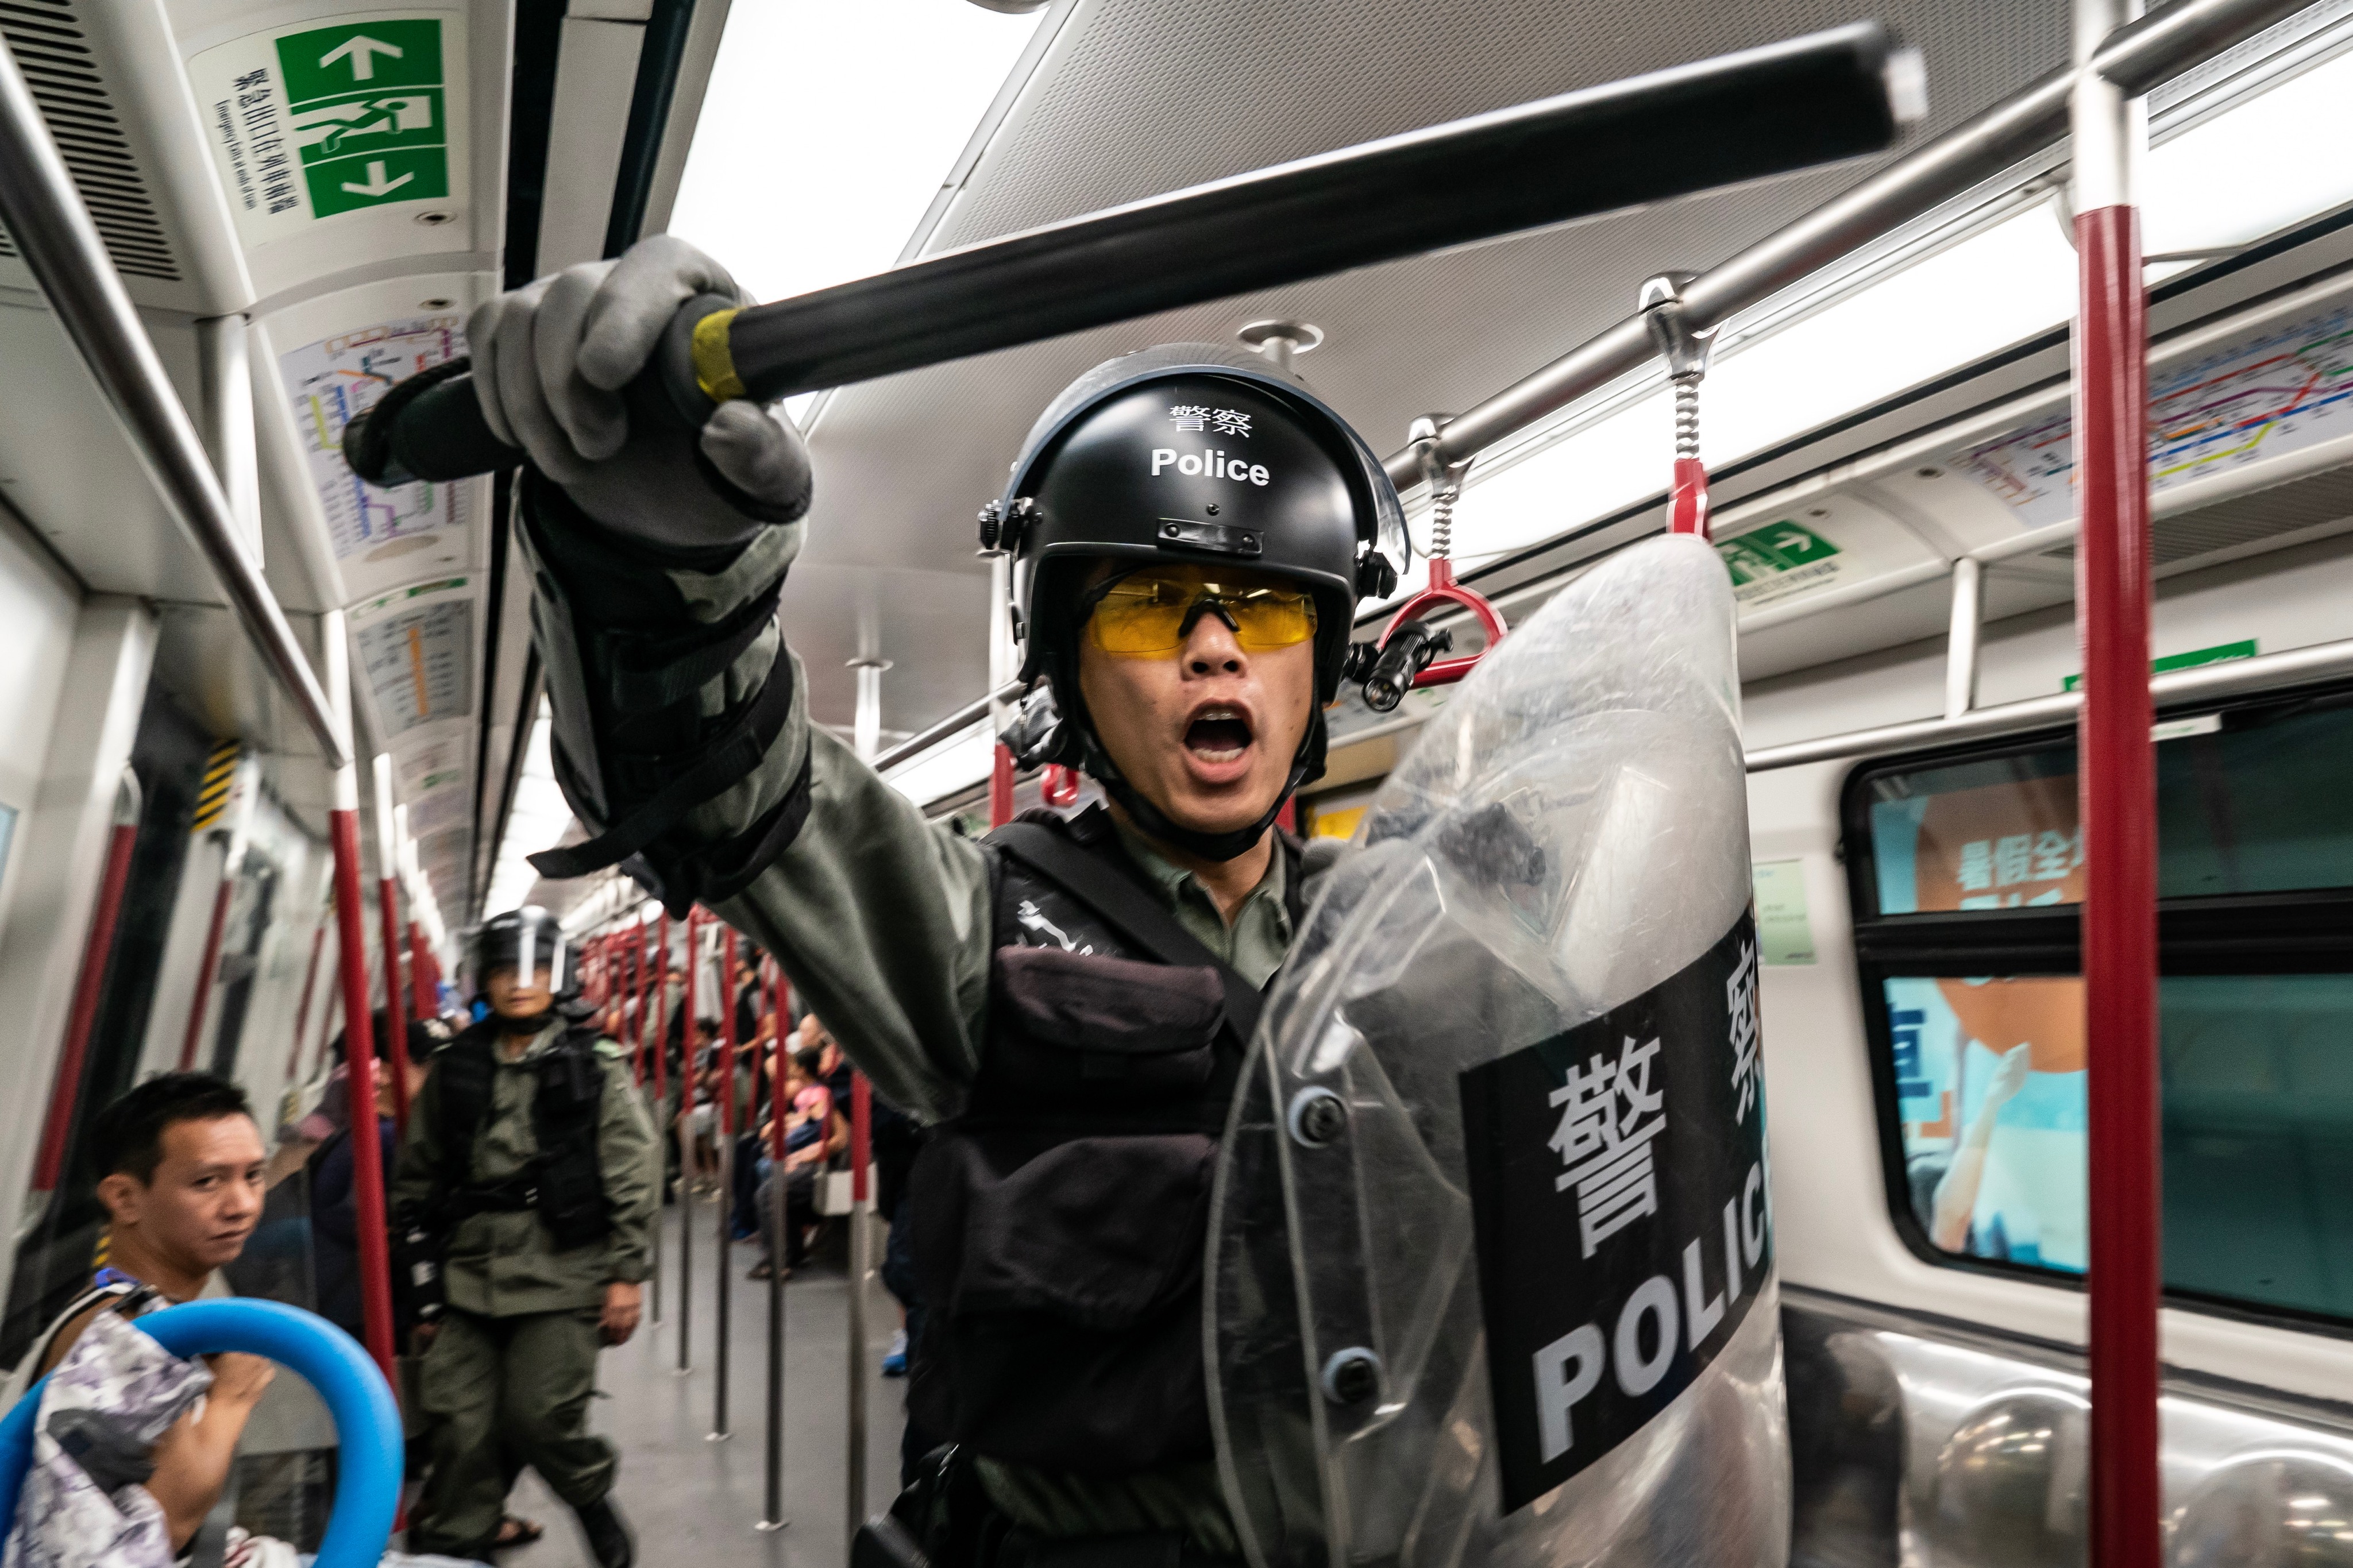 Riot police charge in a train at the Tung Chung MTR station after protesters block the transport routes to Hong Kong International Airport on September 1, 2019 in Hong Kong, China.